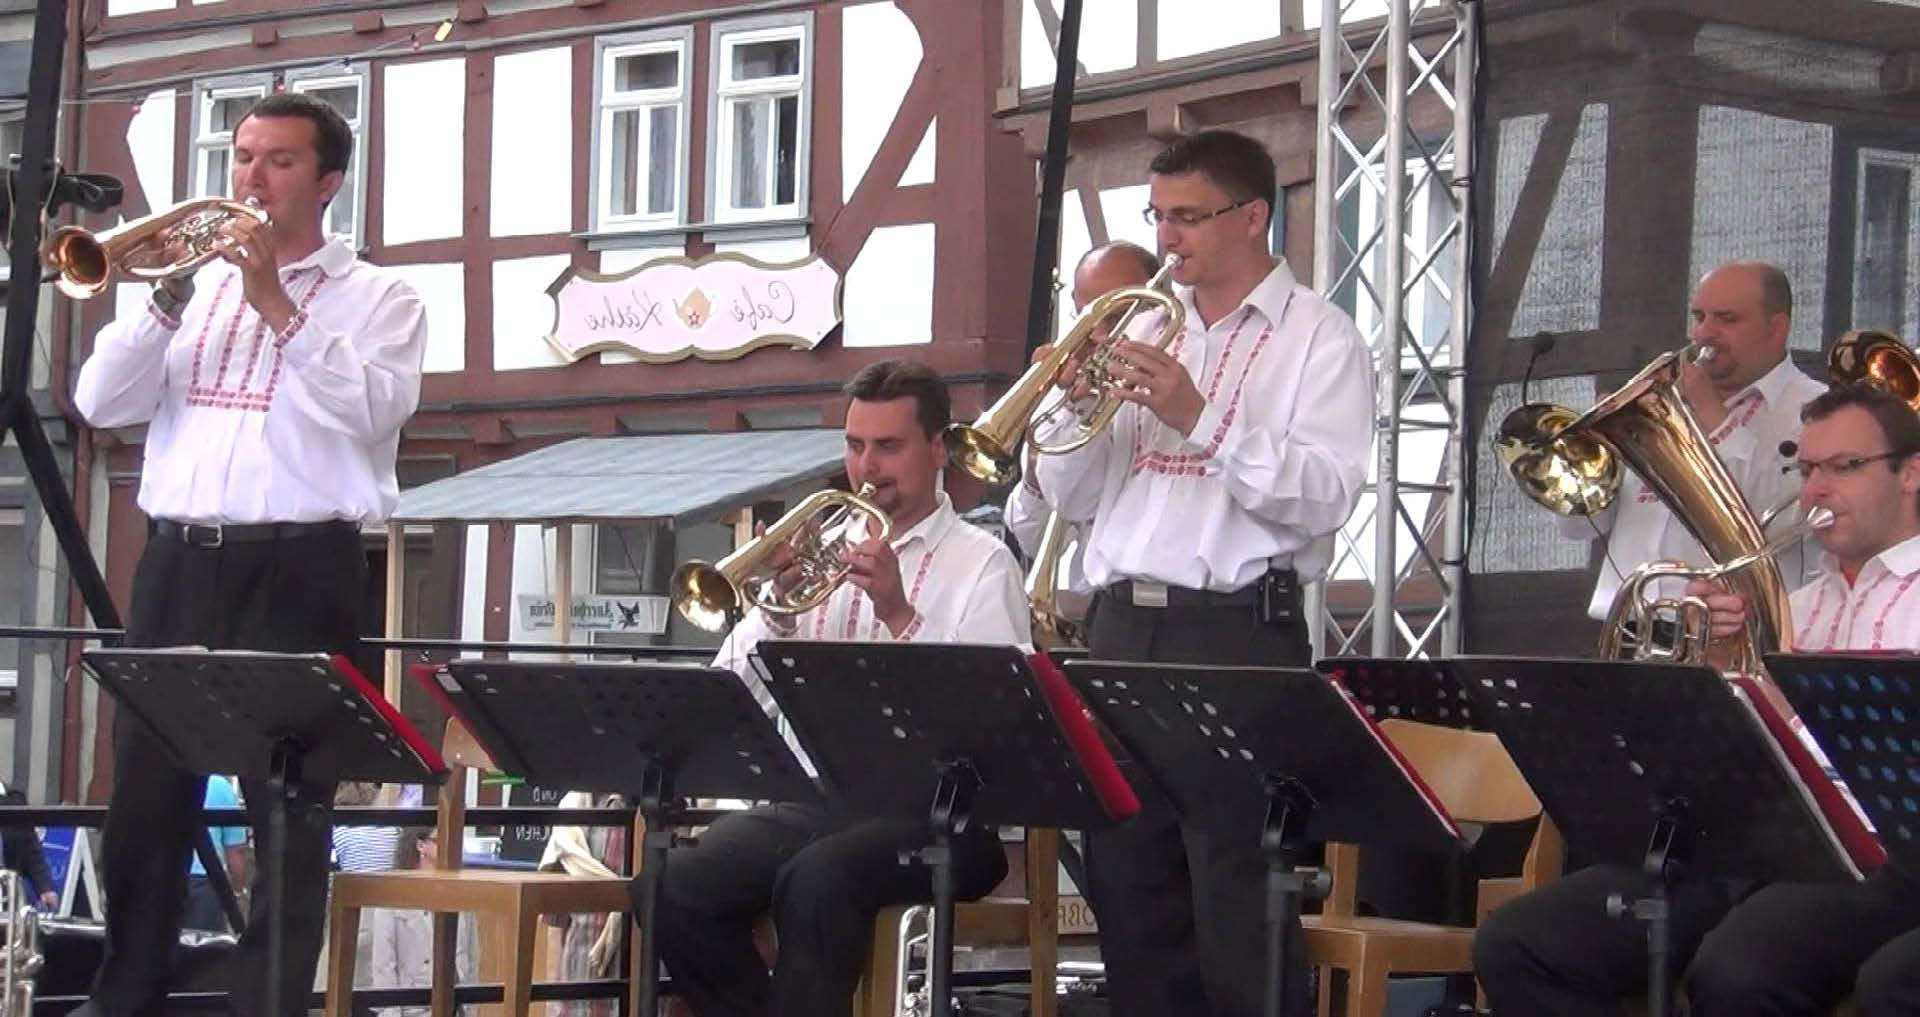 The University of North Texas College of Music is hosting a Czech polka band for